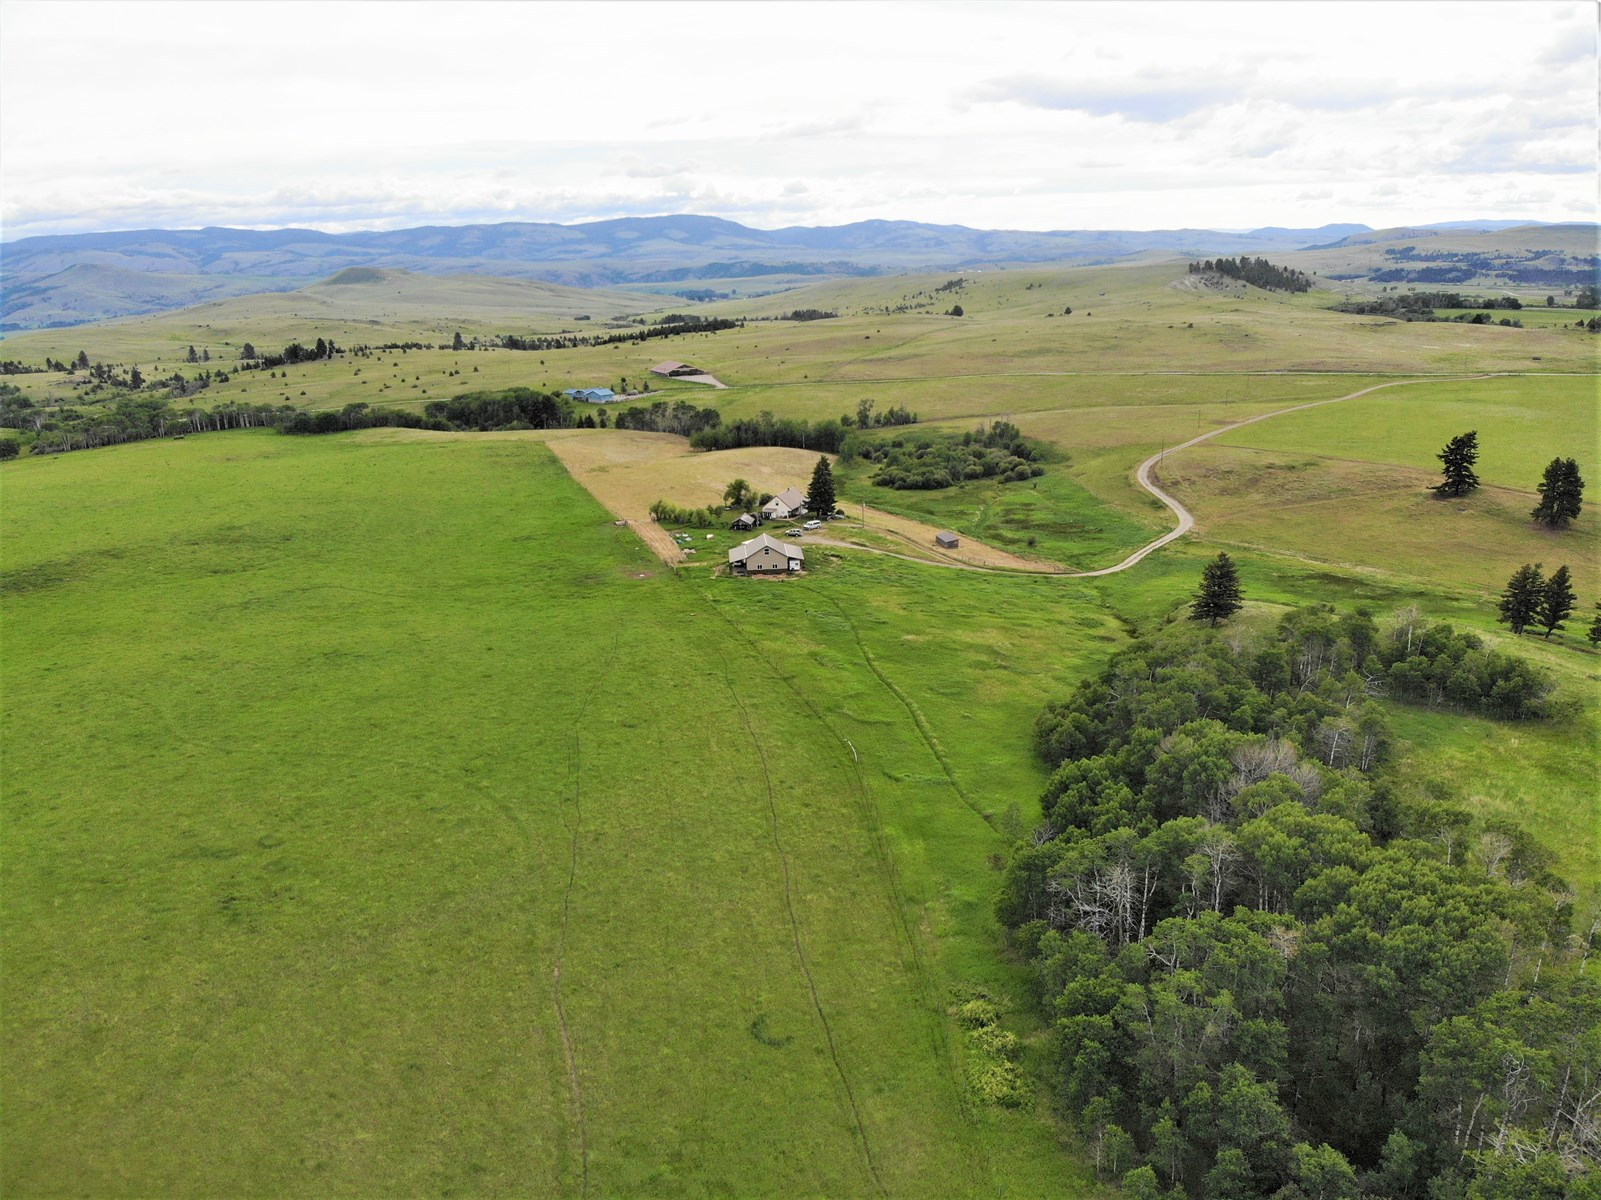 WESTERN MONTANA RANCH FOR SALE